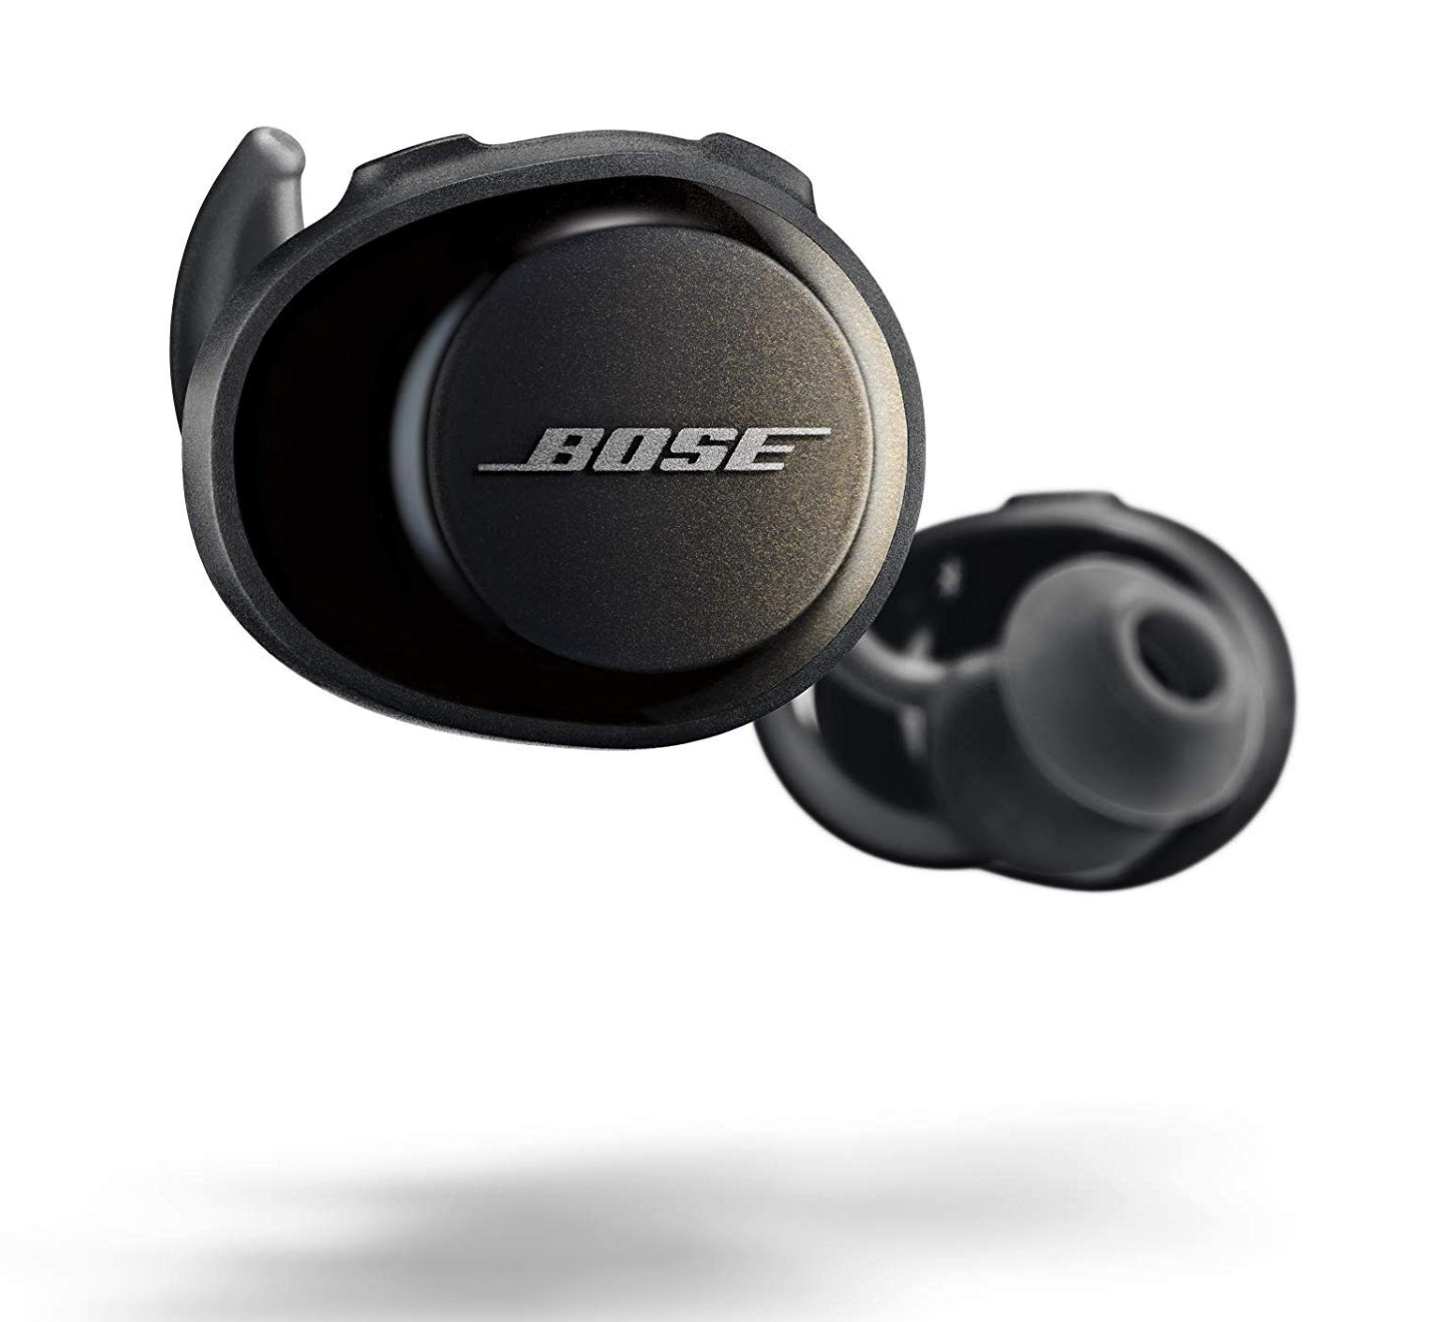 Bose set to shut up shop in Europe, North America, Japan and Australia